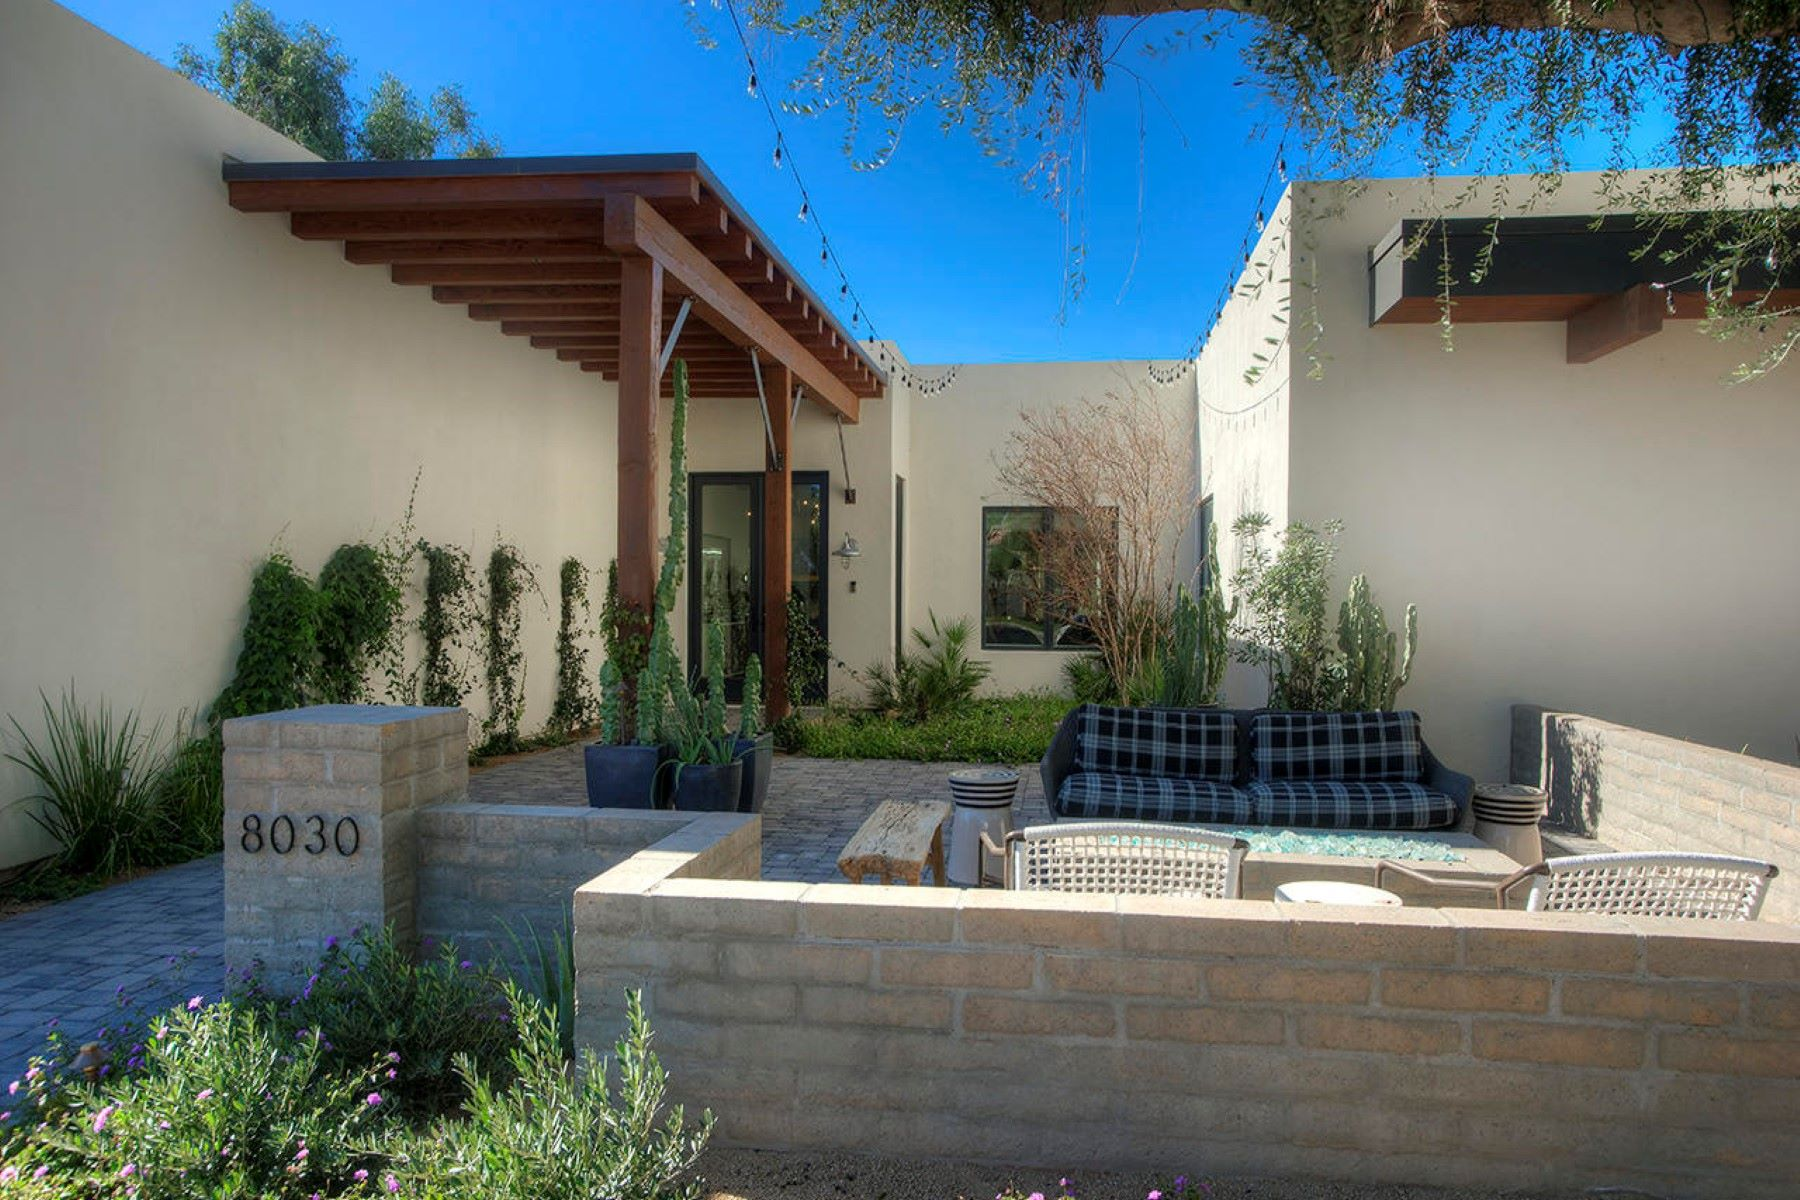 단독 가정 주택 용 매매 에 Highly Sought After Paradise Valley Farms Chic Residence 8030 N 74th PL, Scottsdale, 아리조나, 85258 미국